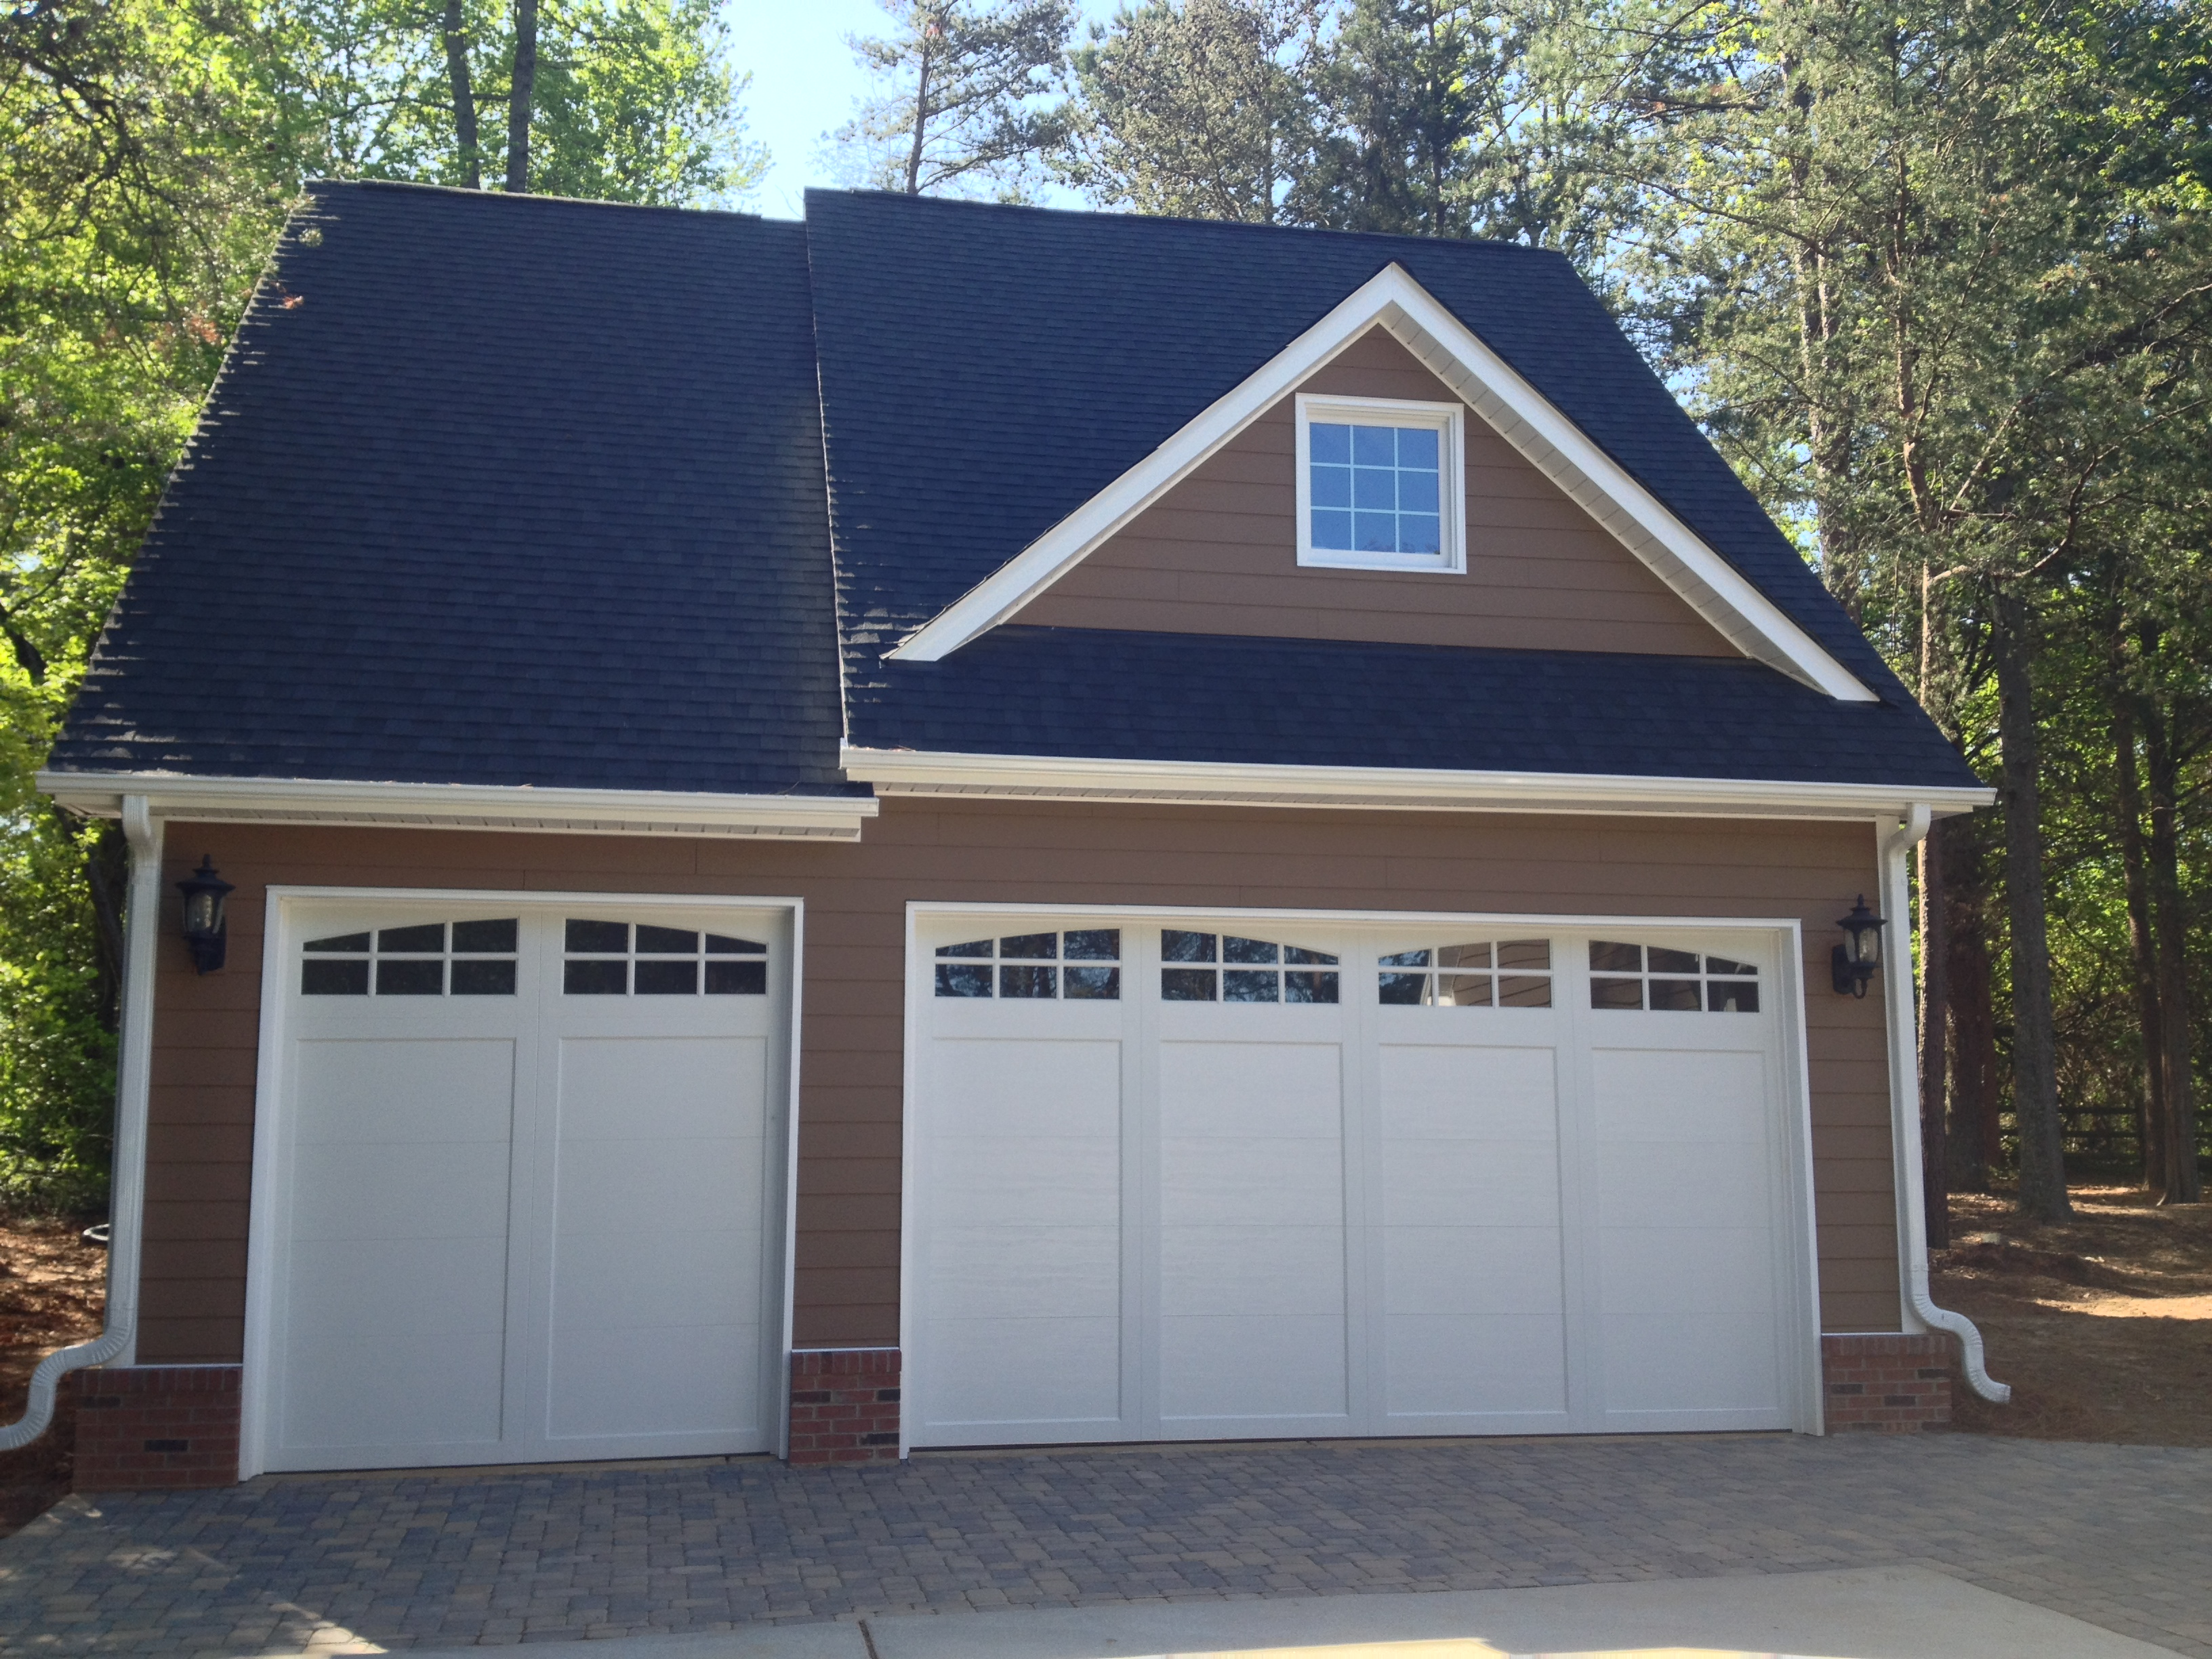 How wide is a two car garage door 3 car detached garage for How wide is a 3 car garage